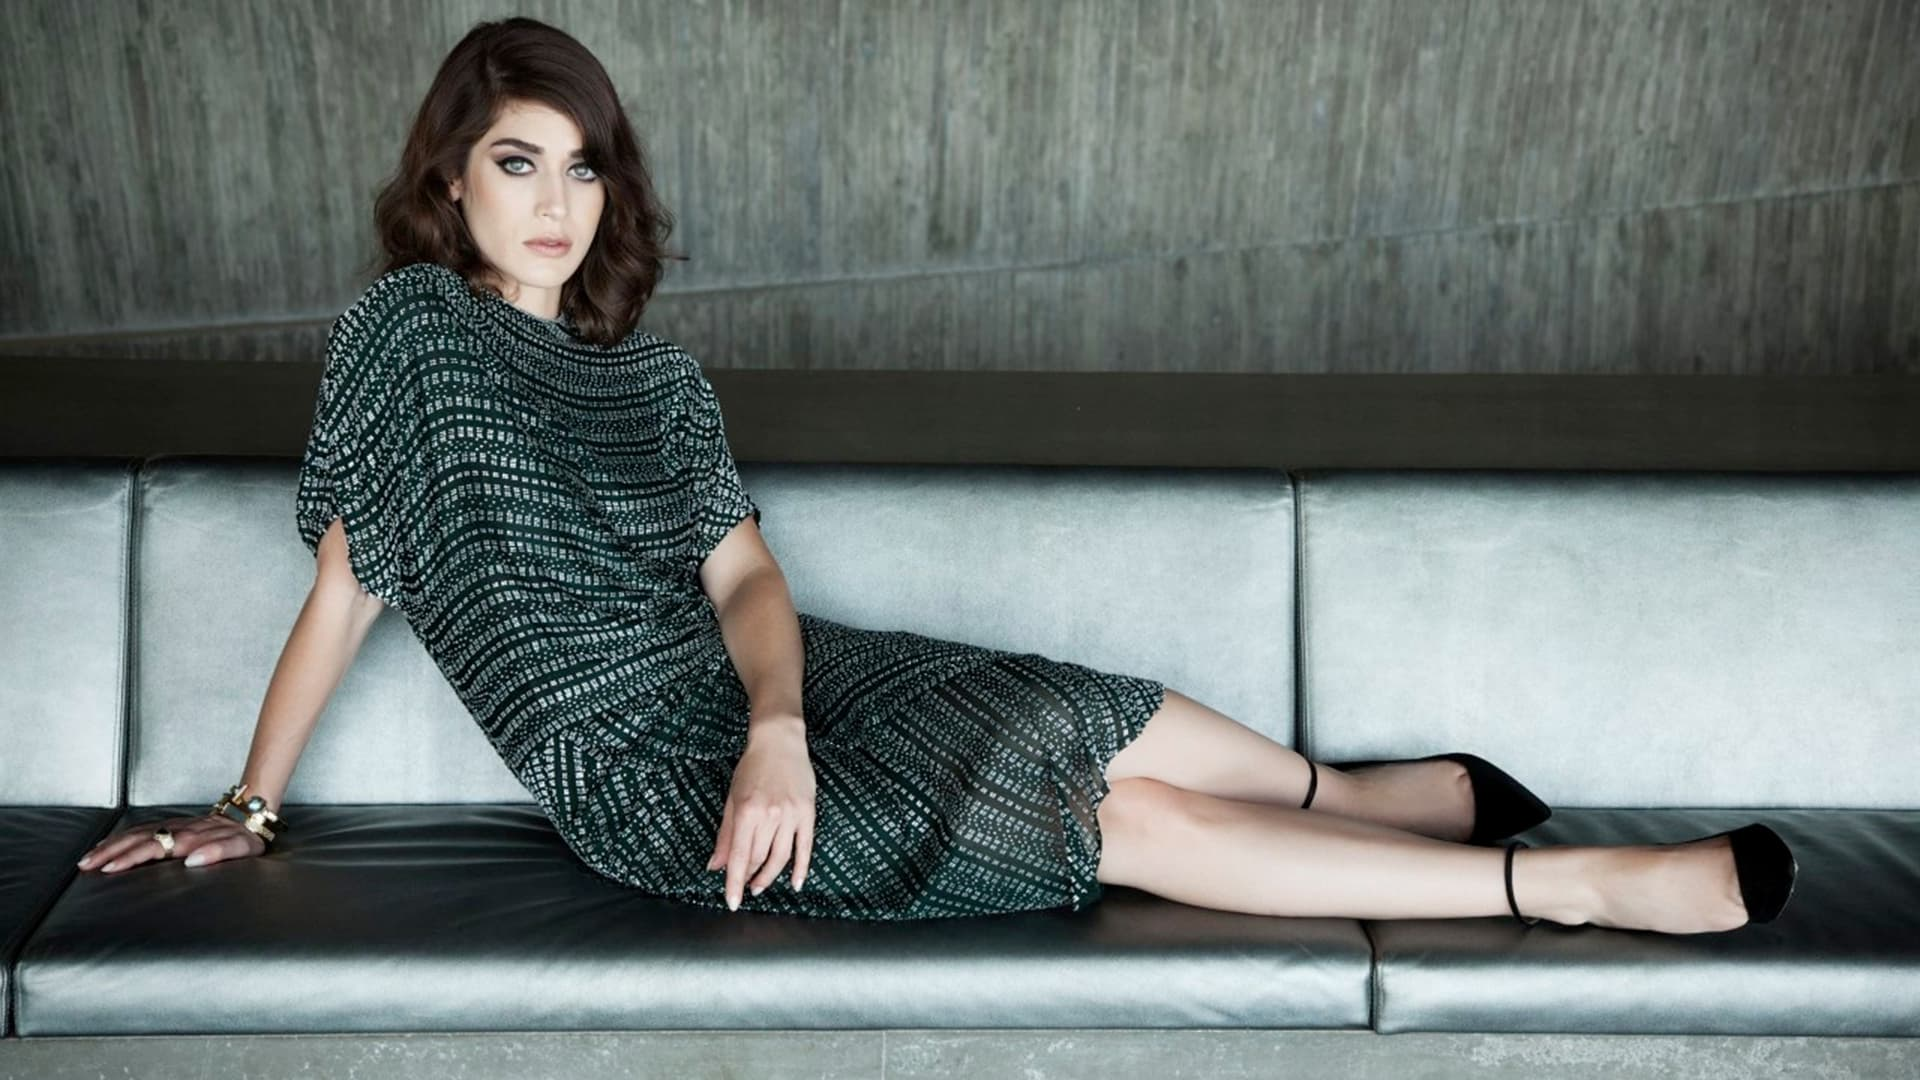 Mean Girls Wallpaper Lizzy Caplan Wallpapers Hd High Quality Download